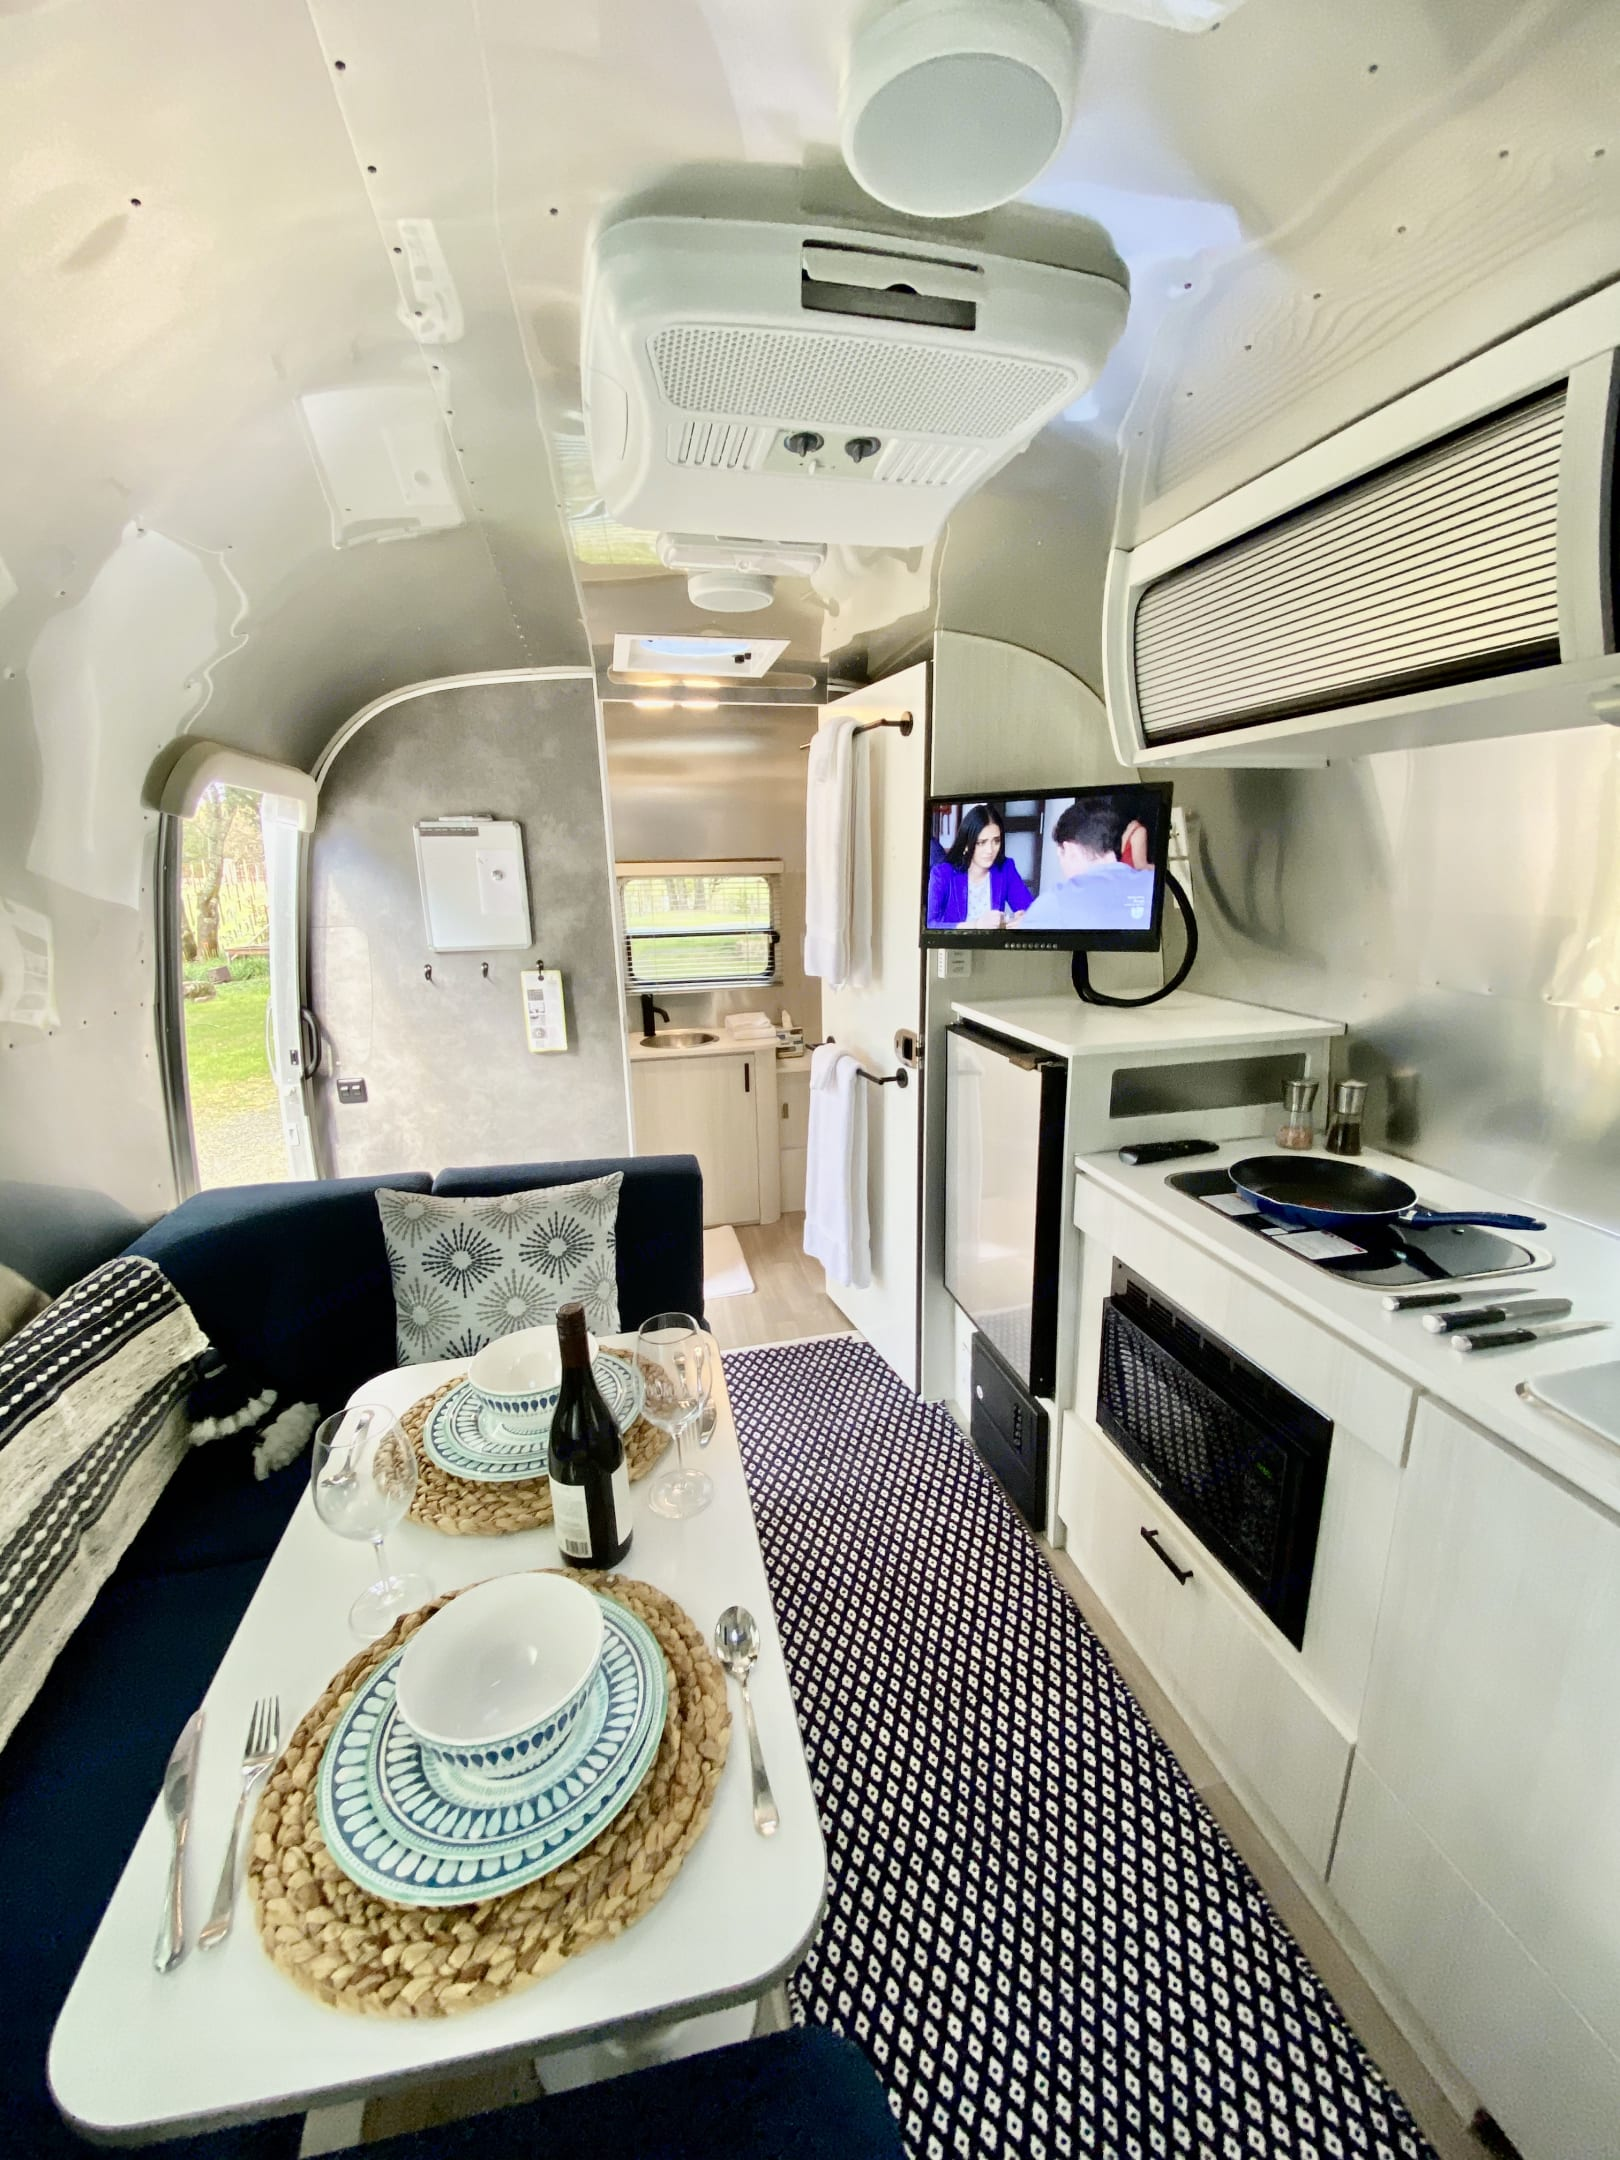 Plush carpeting, TV with DVD player and Roku, a Sonos Move Bluetooth speaker and more!. Airstream Bambi 2020